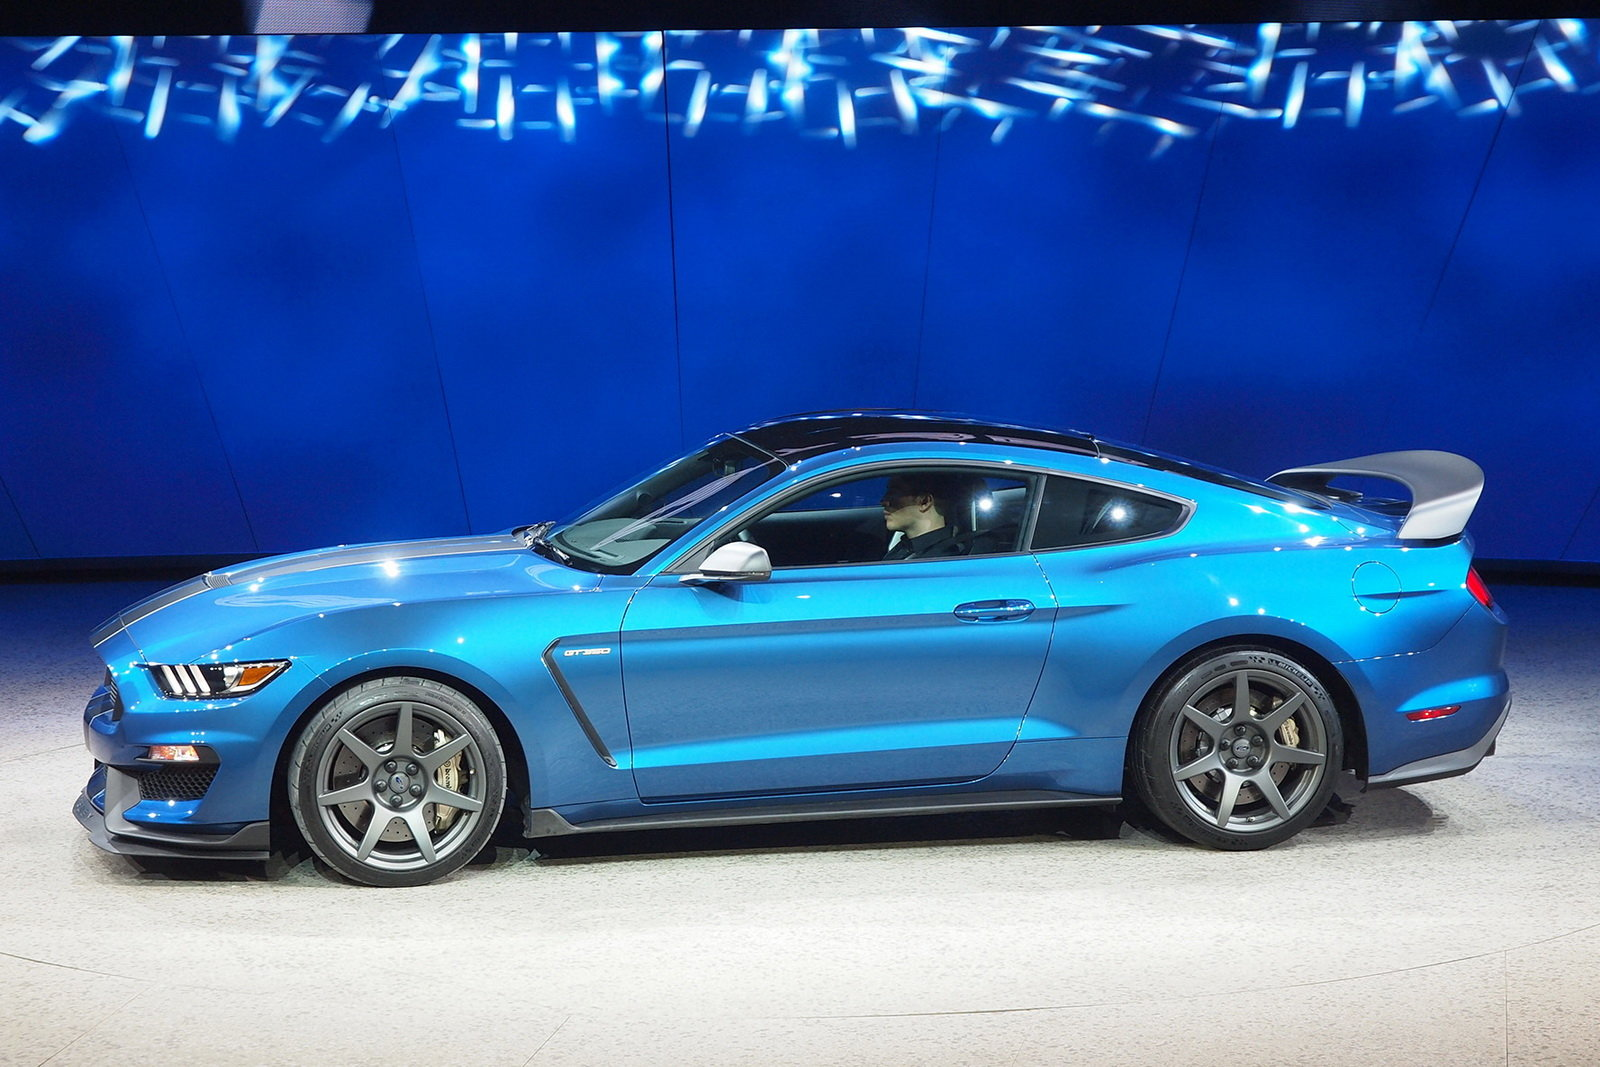 2016 Ford Mustang Shelby Gt350r Side Exterior (Photo 39 of 47)